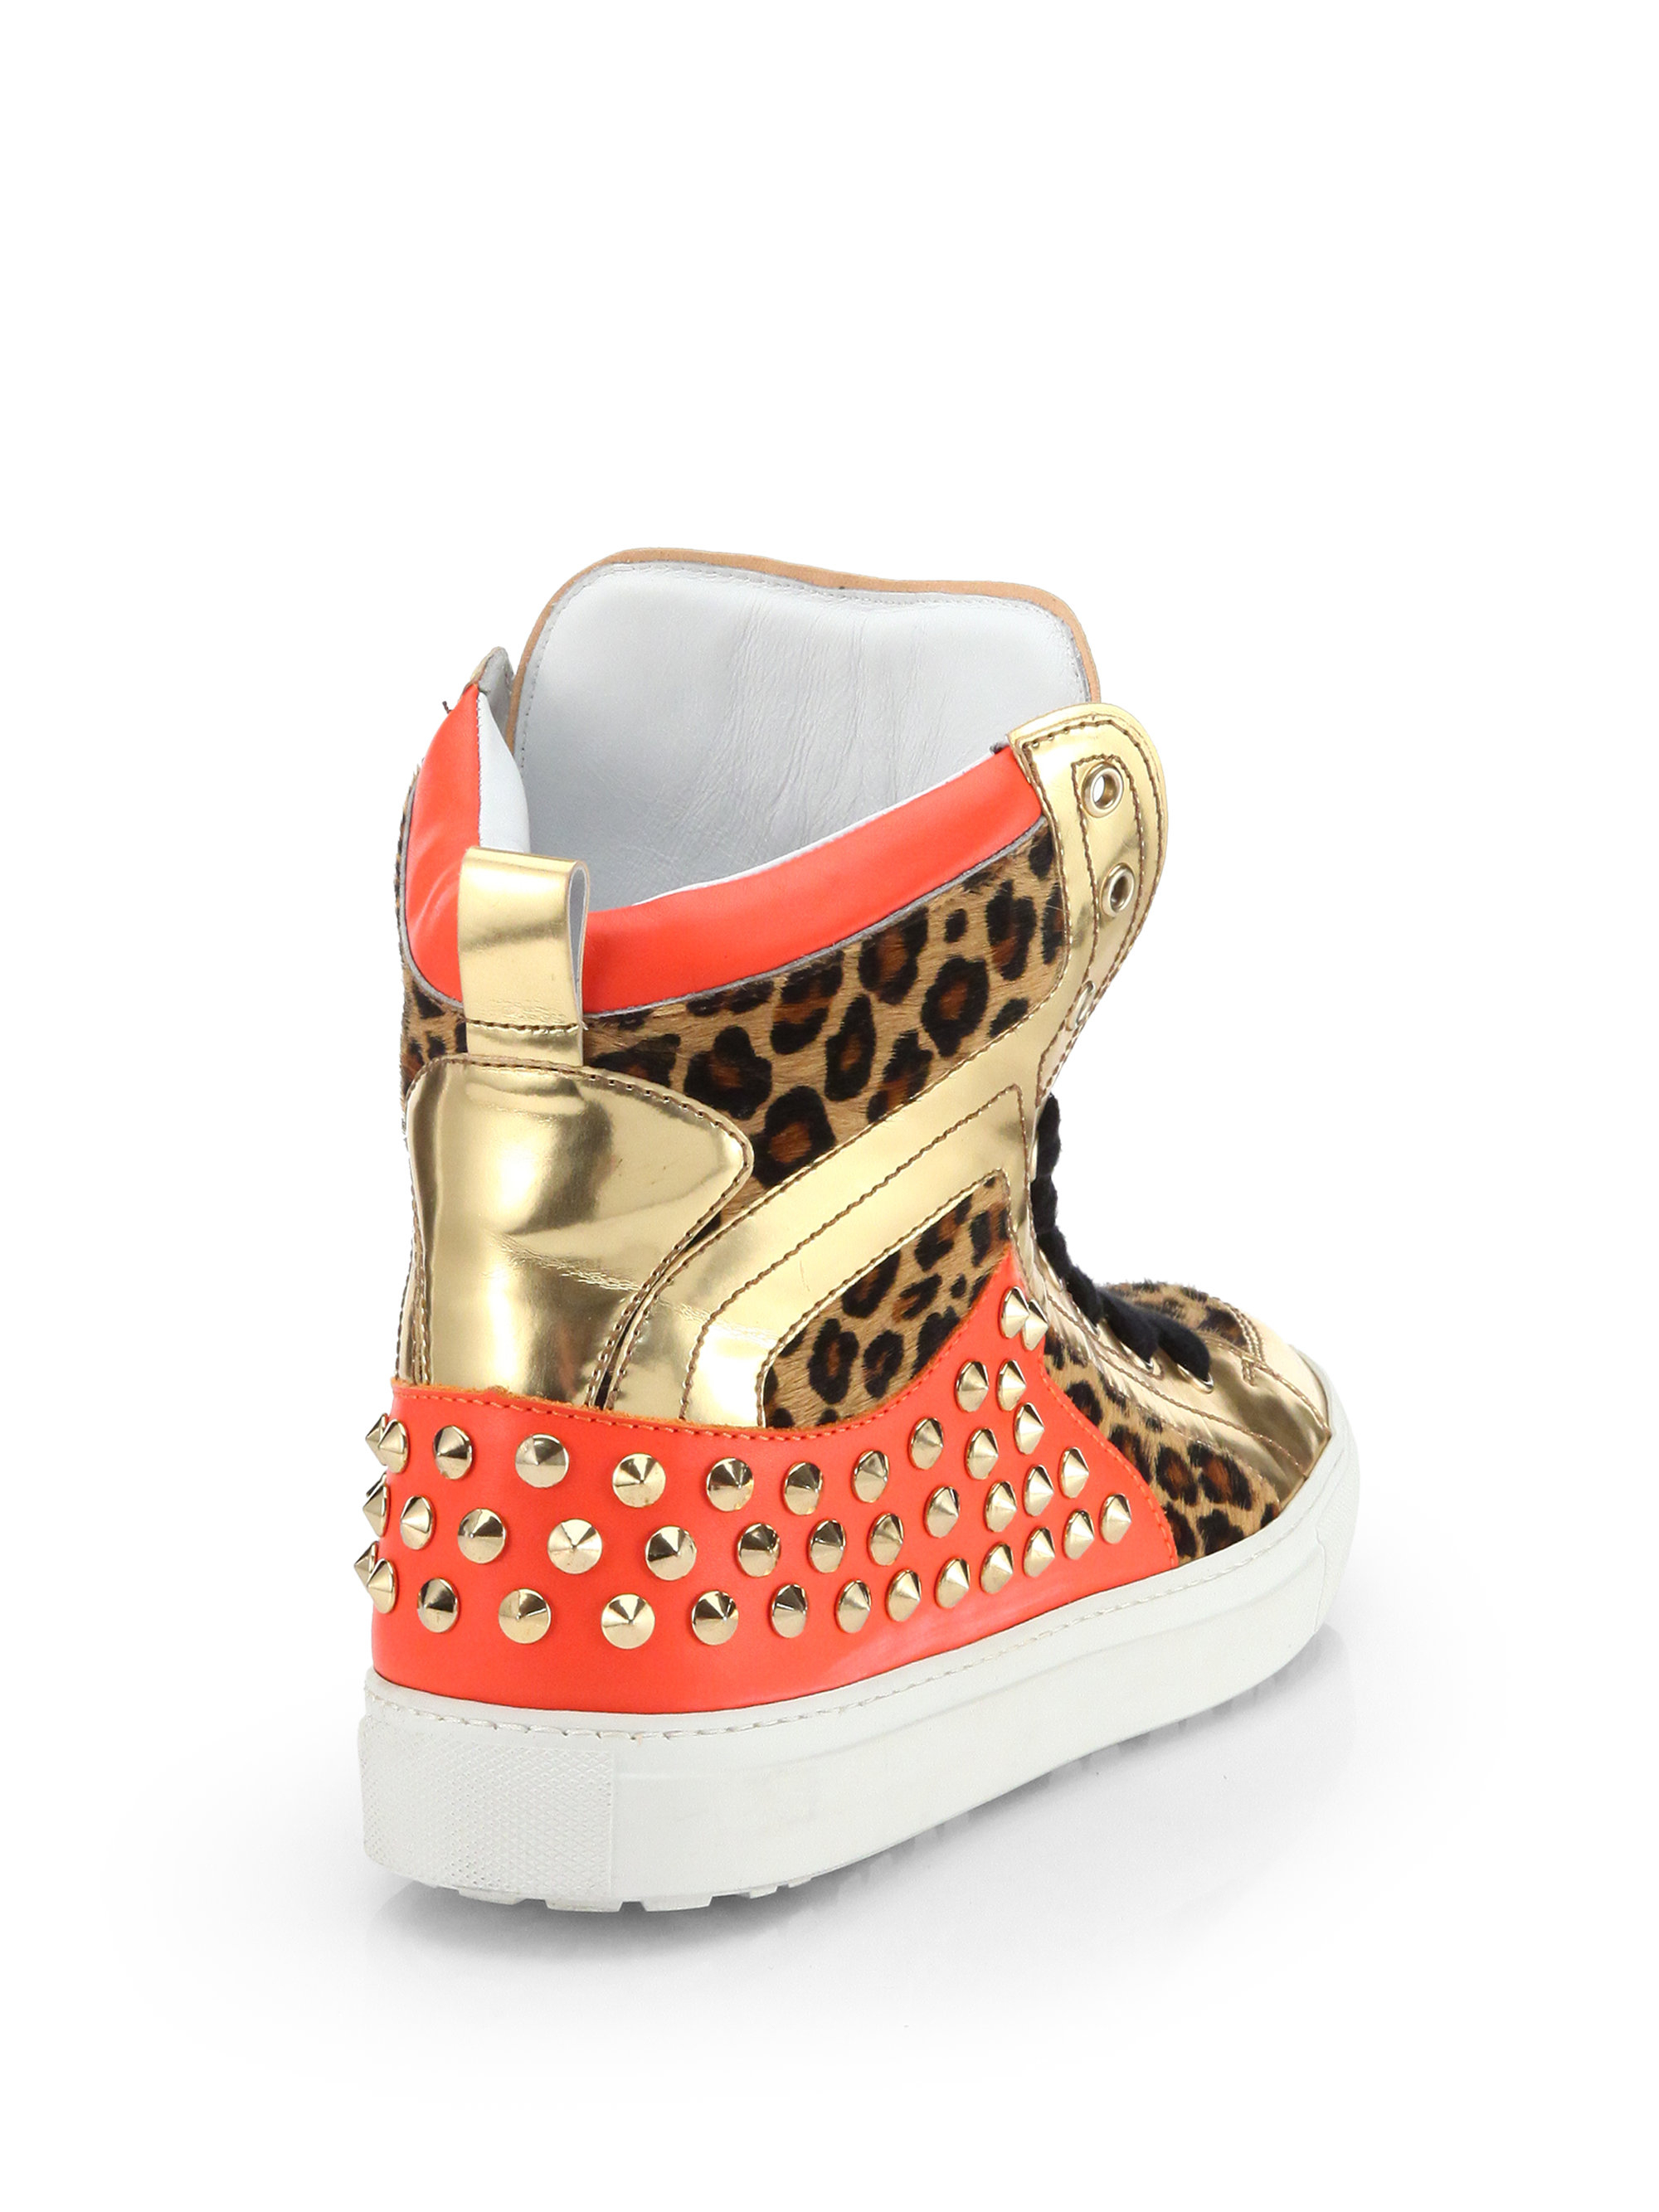 ddcb72662da6 DSquared² Leopard-Print Pony Hair Studded High-Top Sneakers in ...